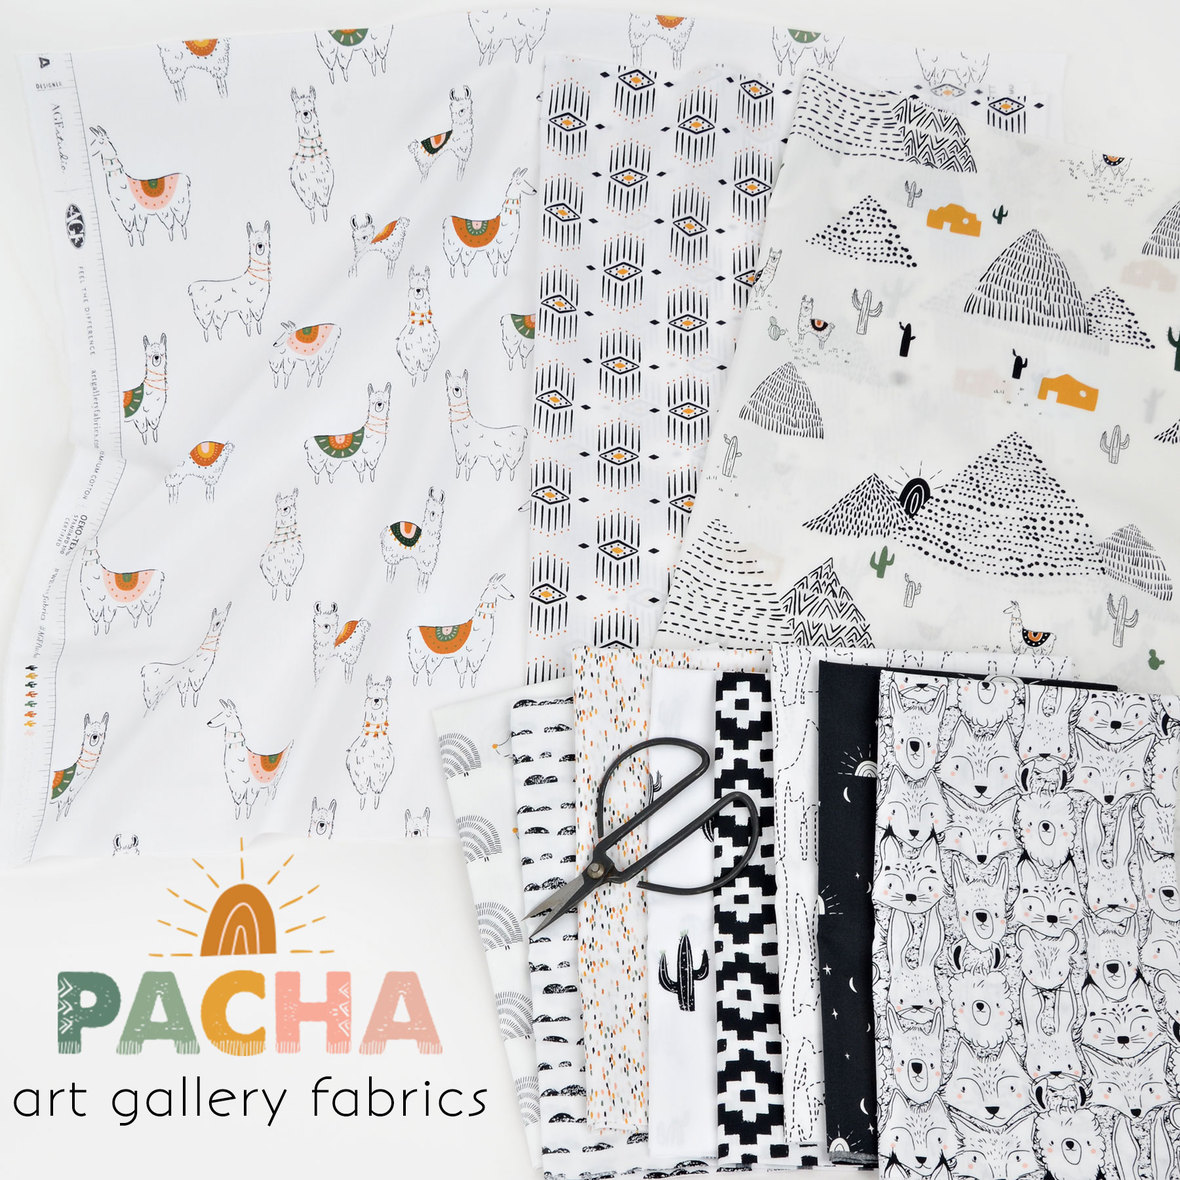 Pacha-Fabric-Art-Gallery-Fabrics-Pacha-at-Hawthorne-Supply-Co